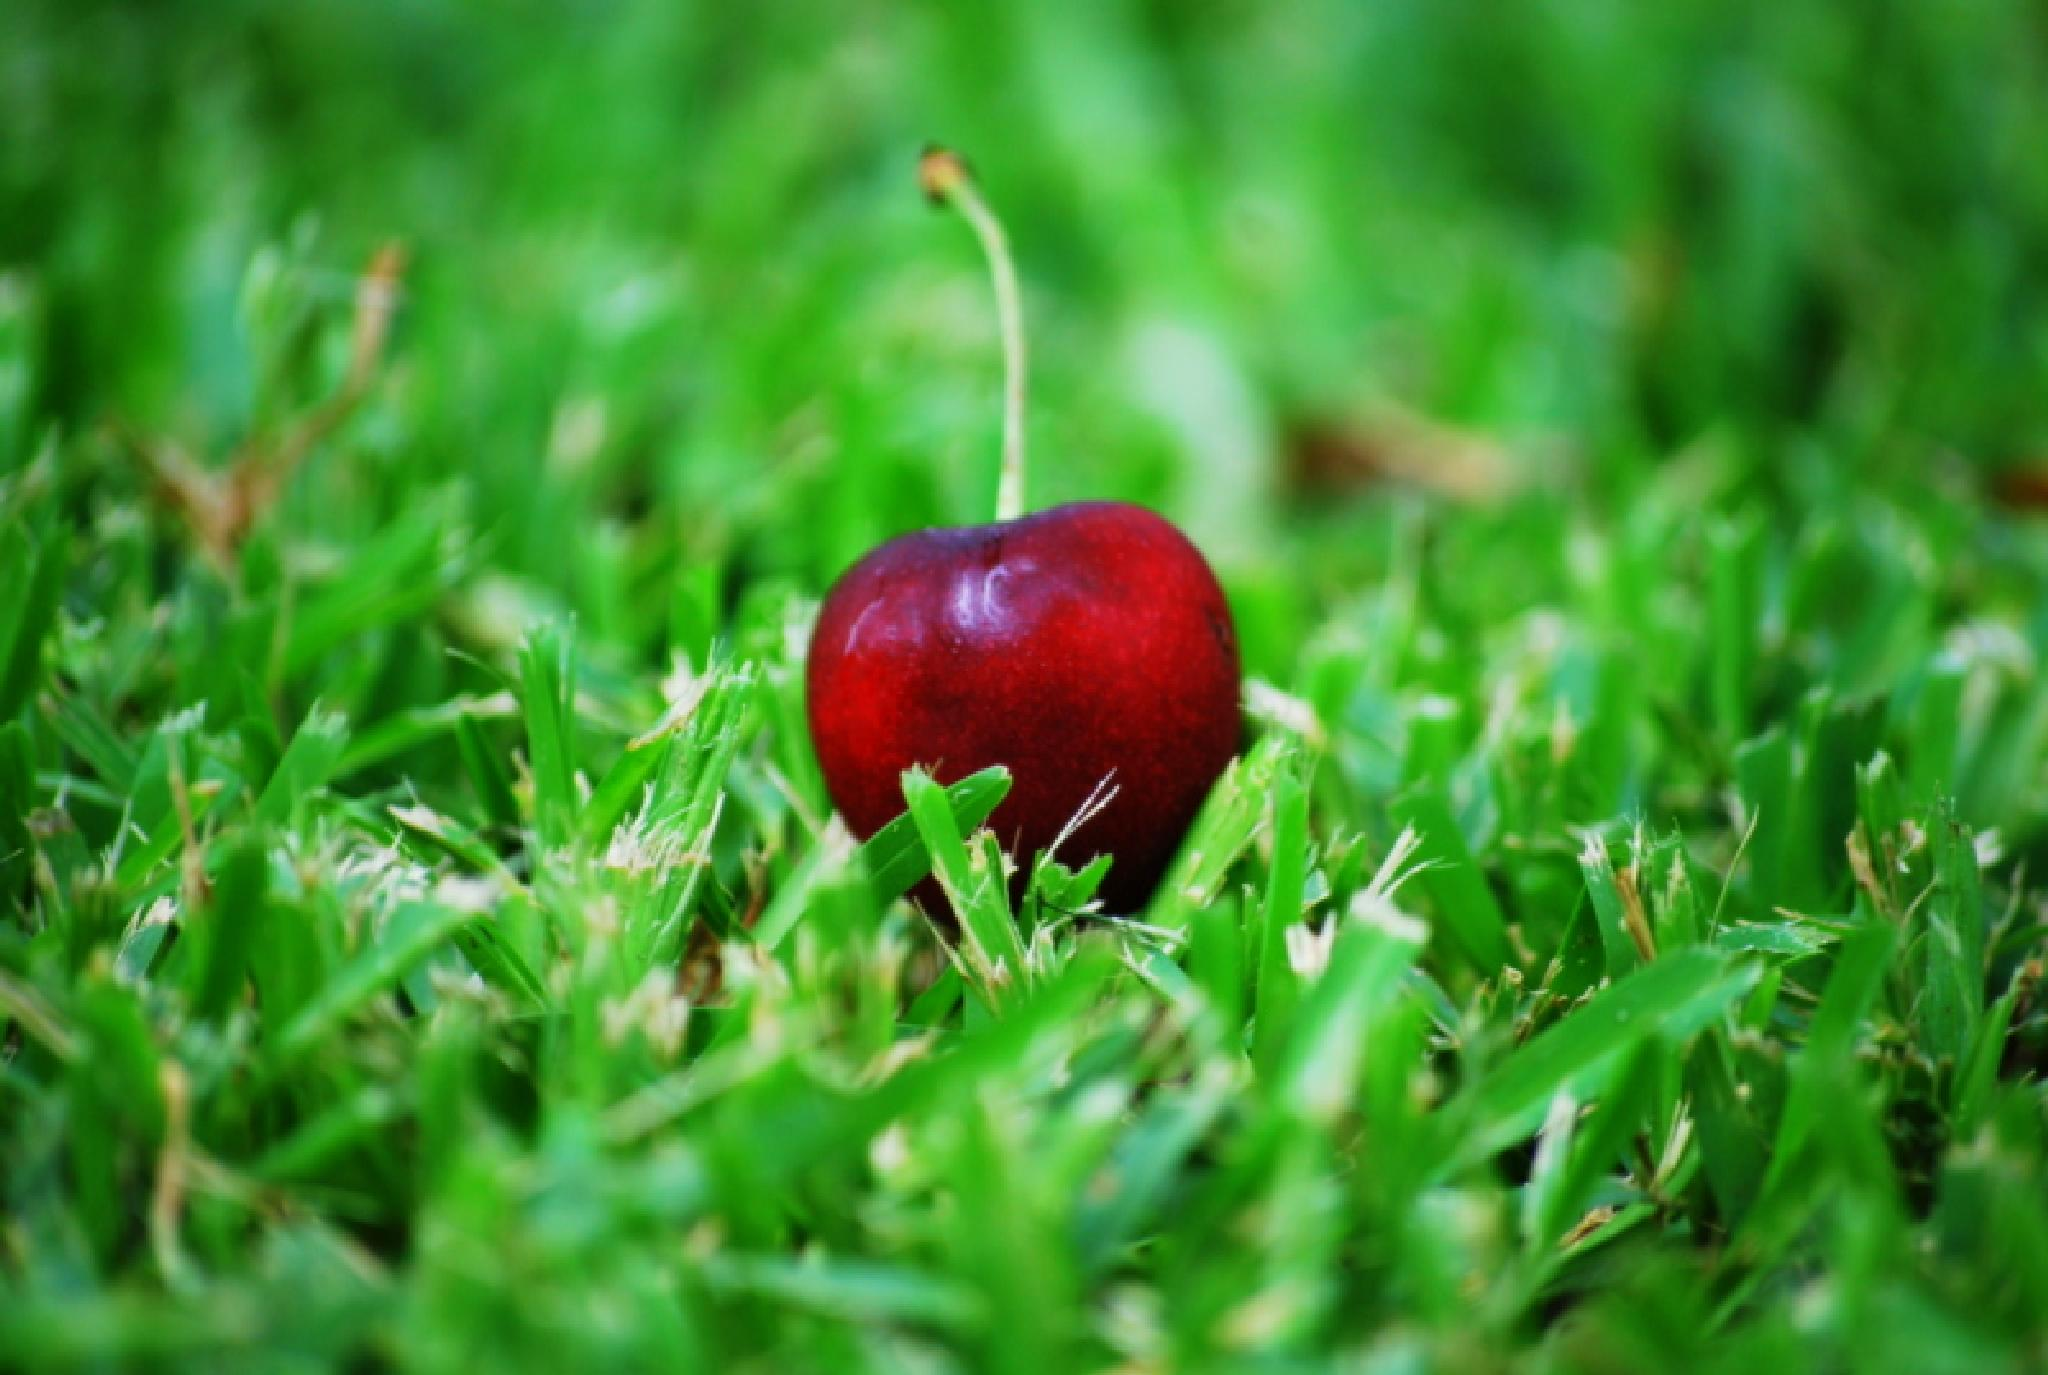 Cherry by Shannon Smith